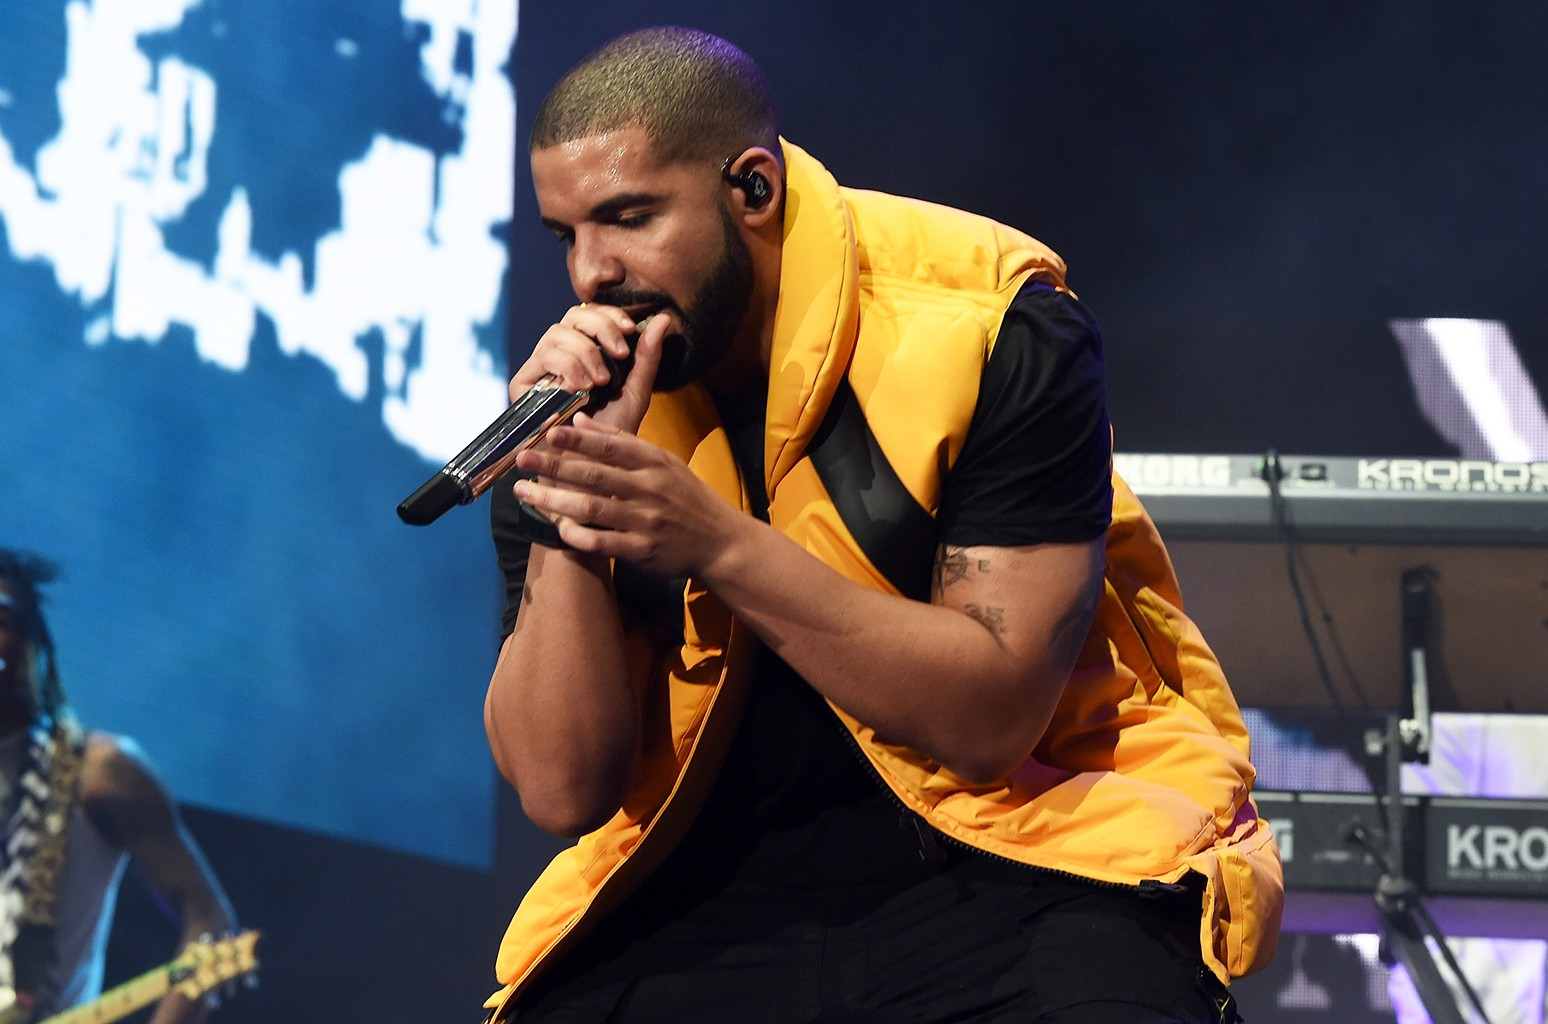 Drake performs during day 2 of the Coachella Valley Music And Arts Festival at the Empire Polo Club on April 15, 2017 in Indio, Calif.